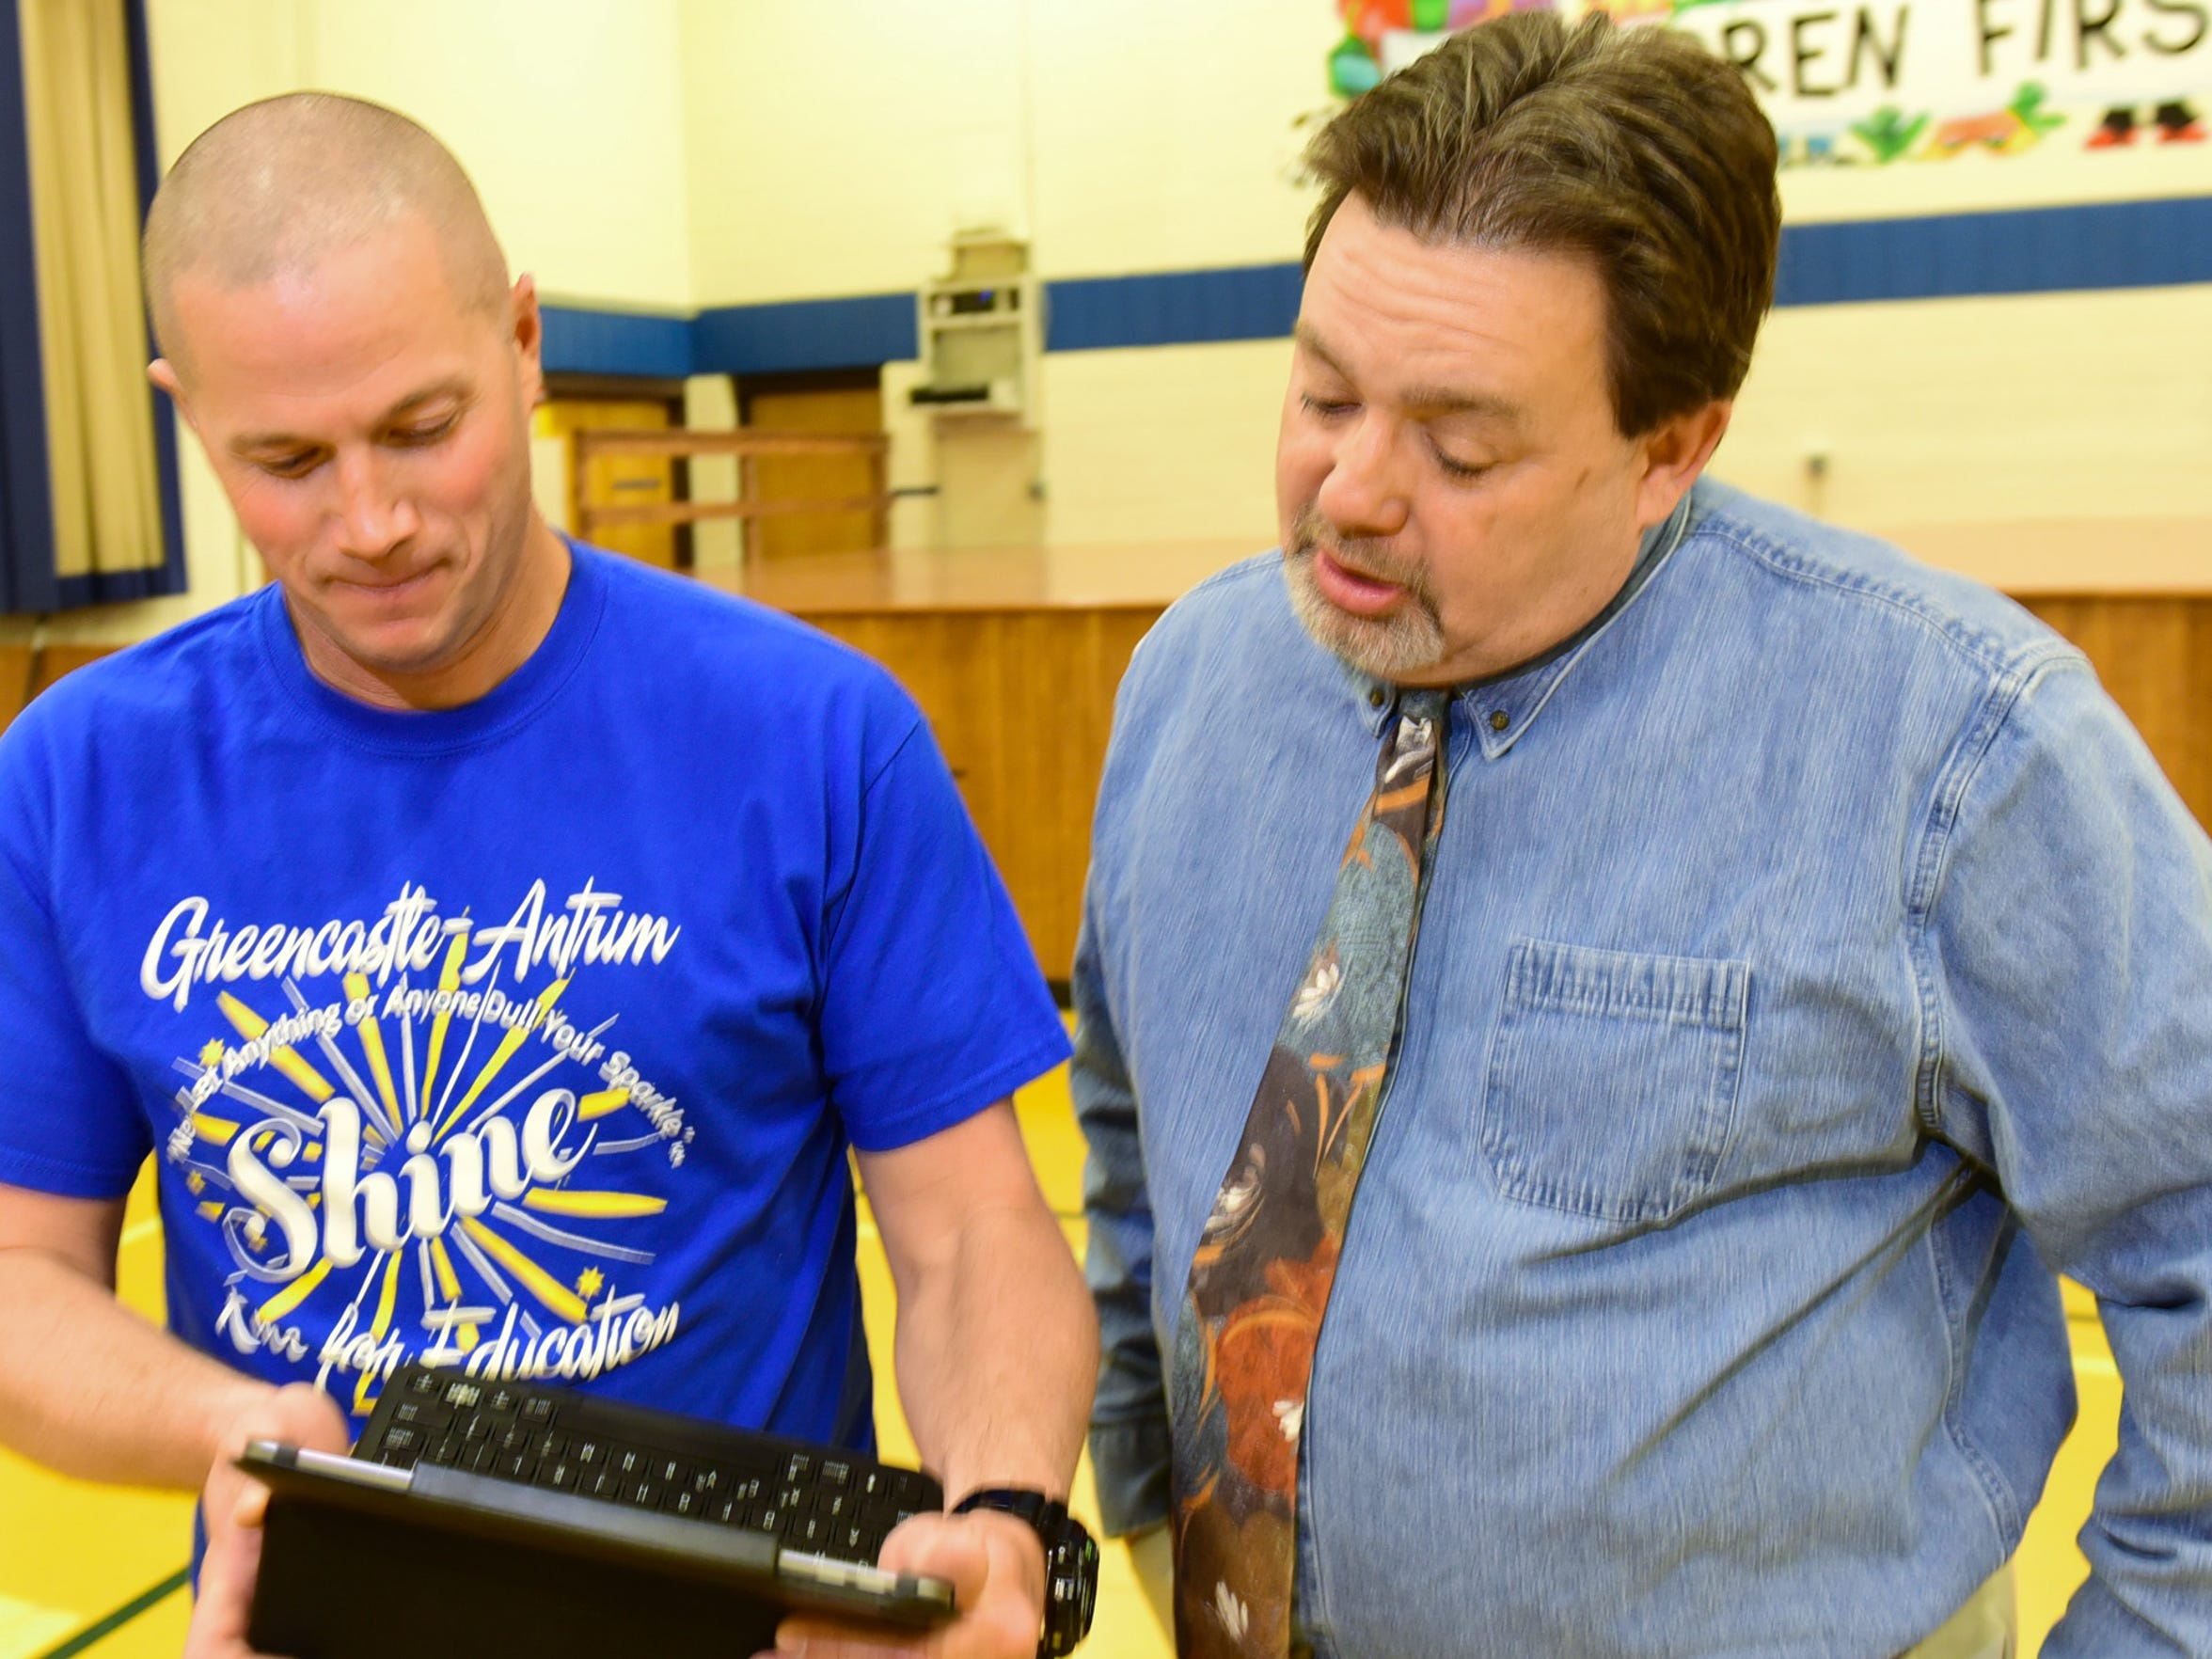 Greg Hoover, right, Greencastle-Antrim School District superintendent, chats with teacher Donnie Cordell, Tuesday, April 12, 2016, is retiring in June.